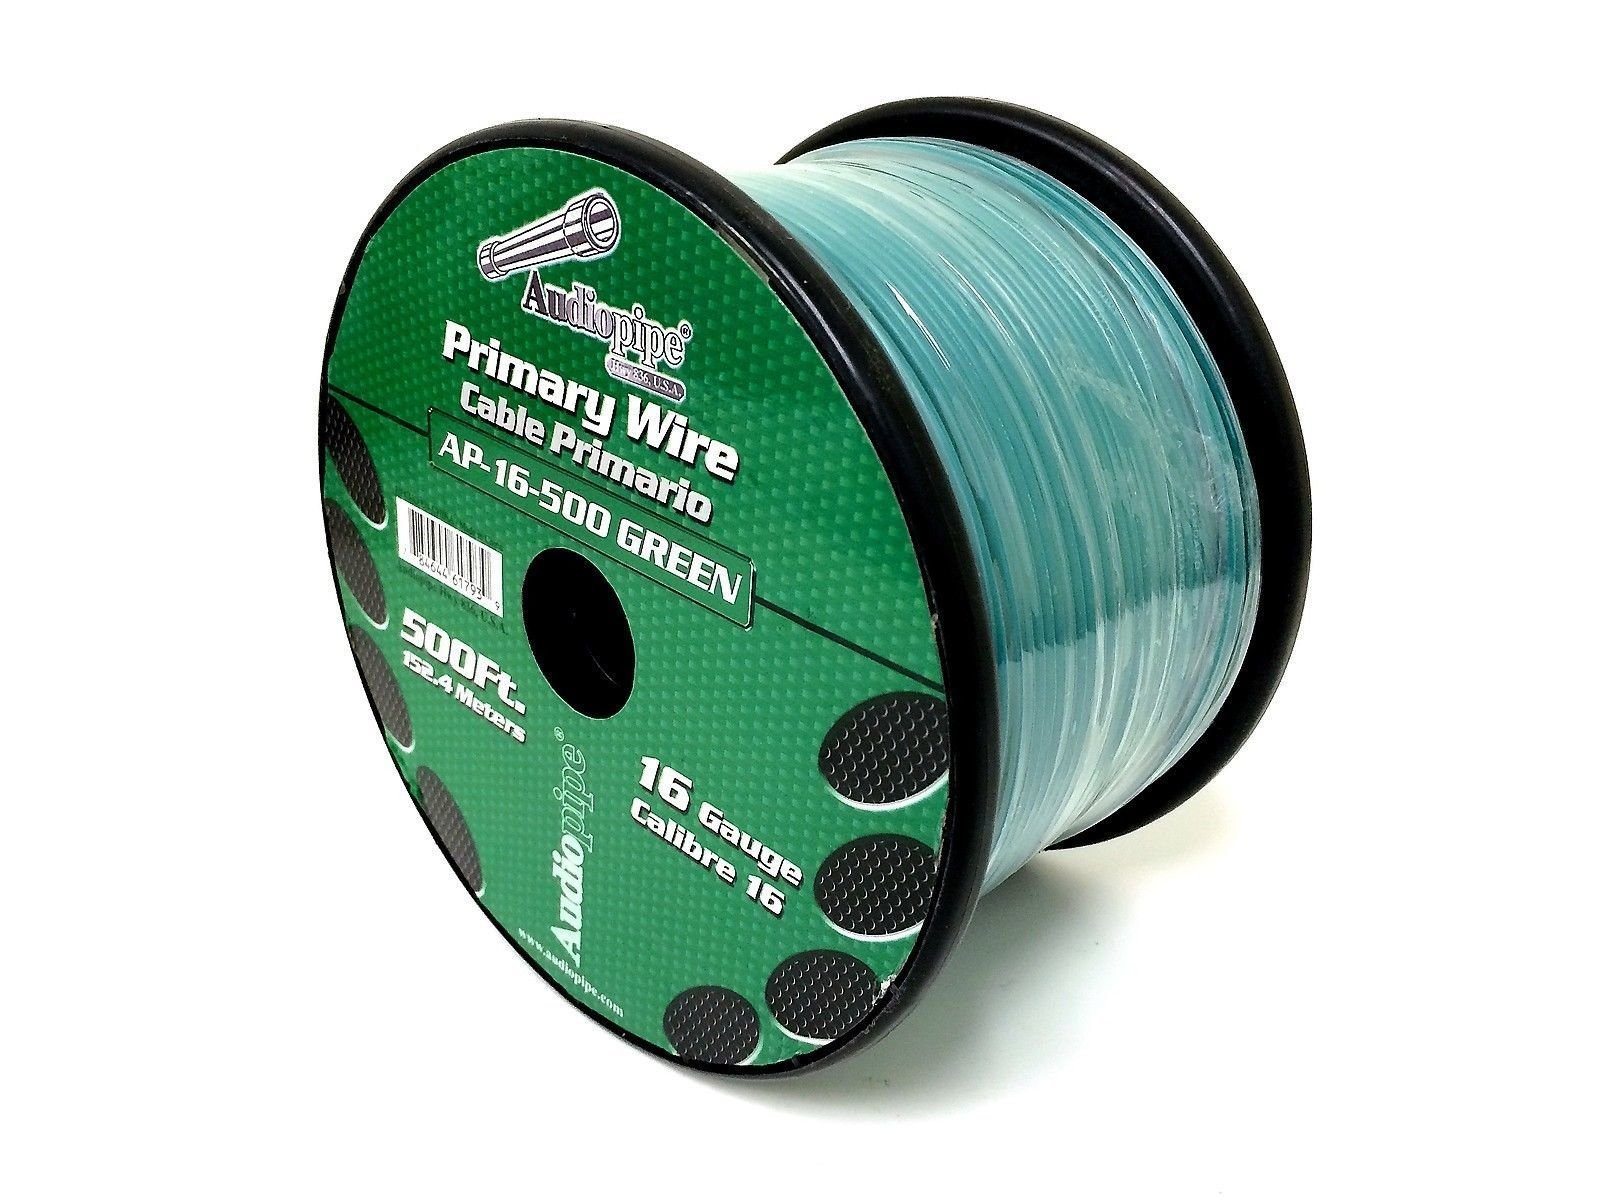 3 Rolls of 16 Gauge - 500' each Audiopipe Car Audio Home Primary Remote Wire by Audiopipe (Image #4)